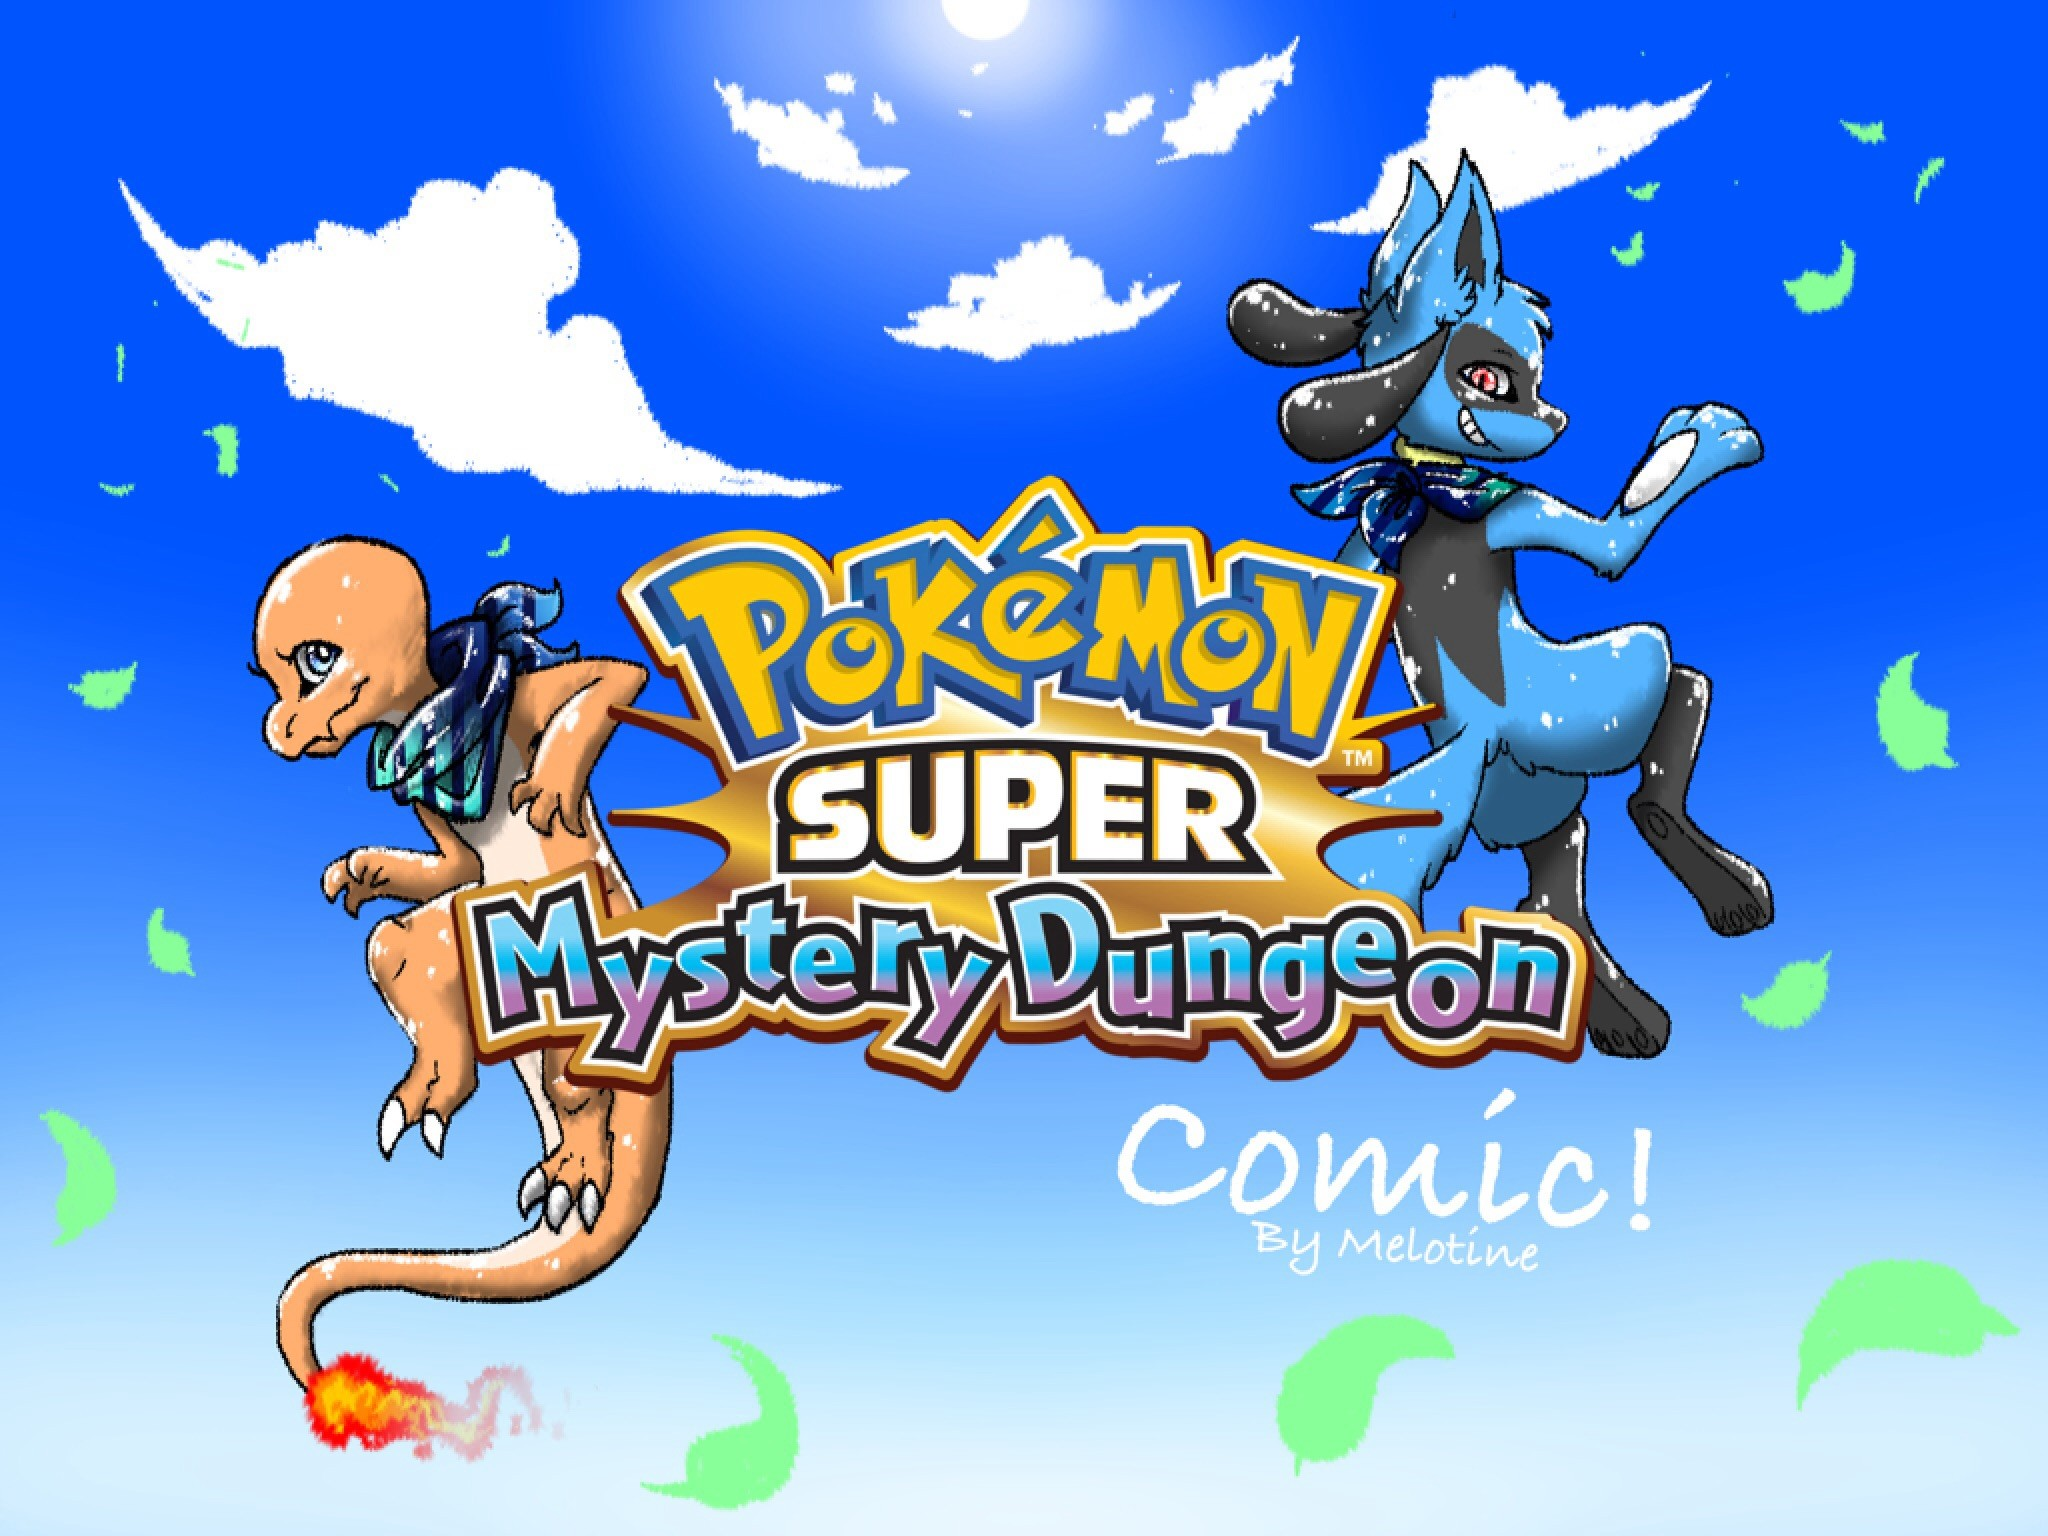 Pokemon Mystery Dungeon Wallpapers (42 Wallpapers) – Adorable Wallpapers